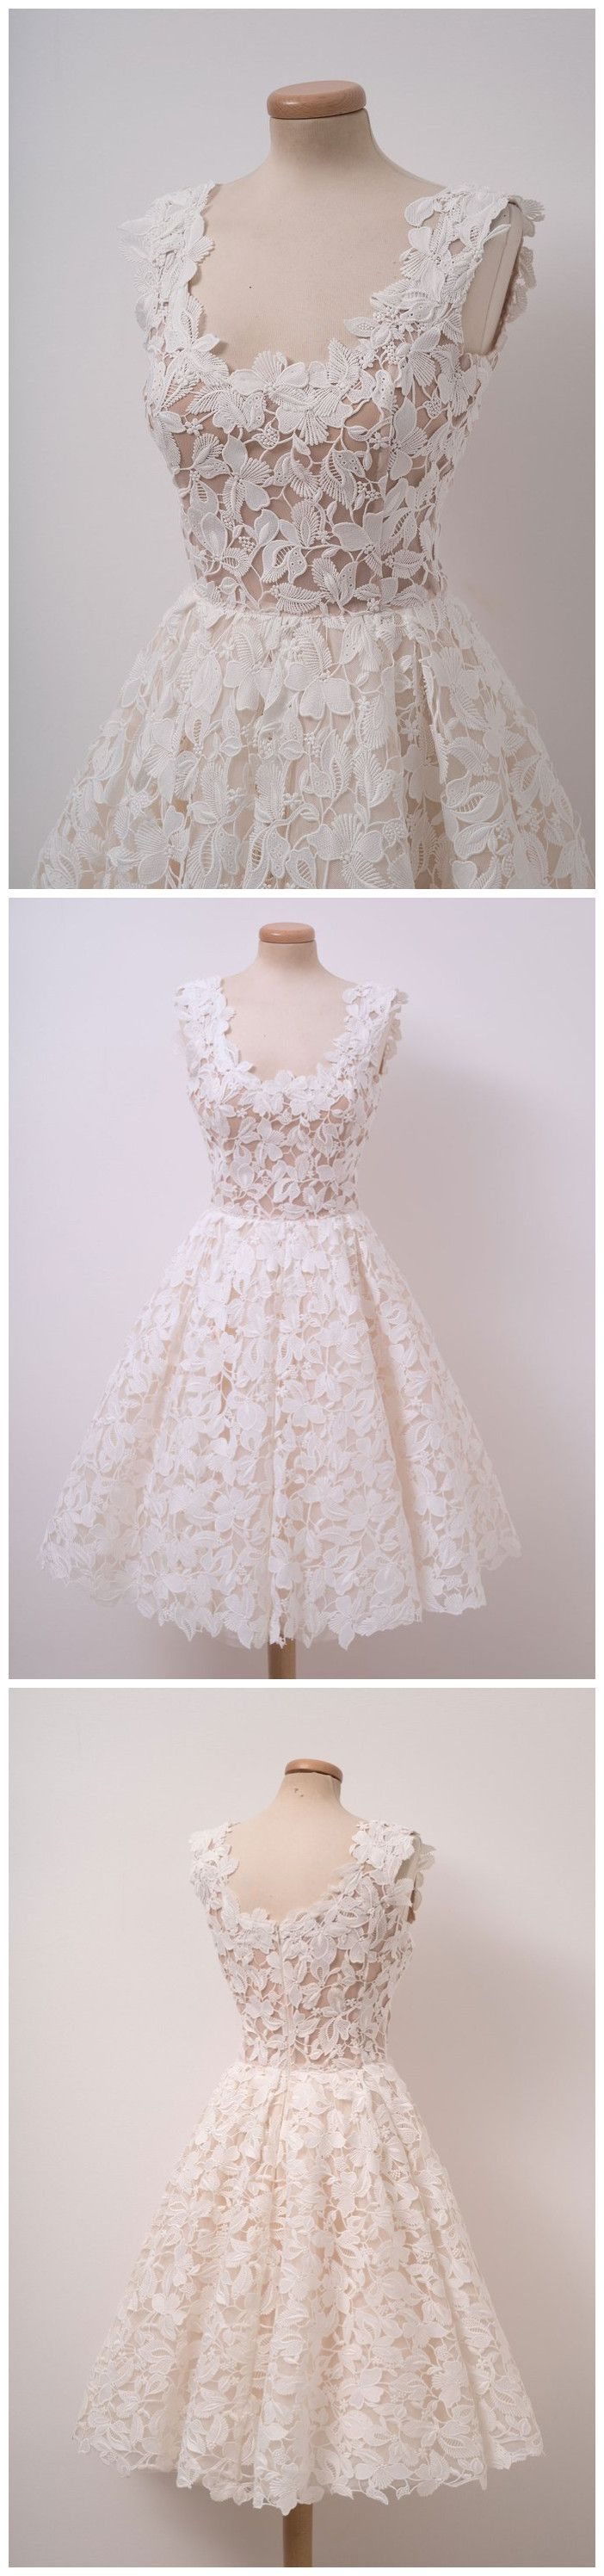 Aline ivory vintage homecoming dress lace homecoming dresses short